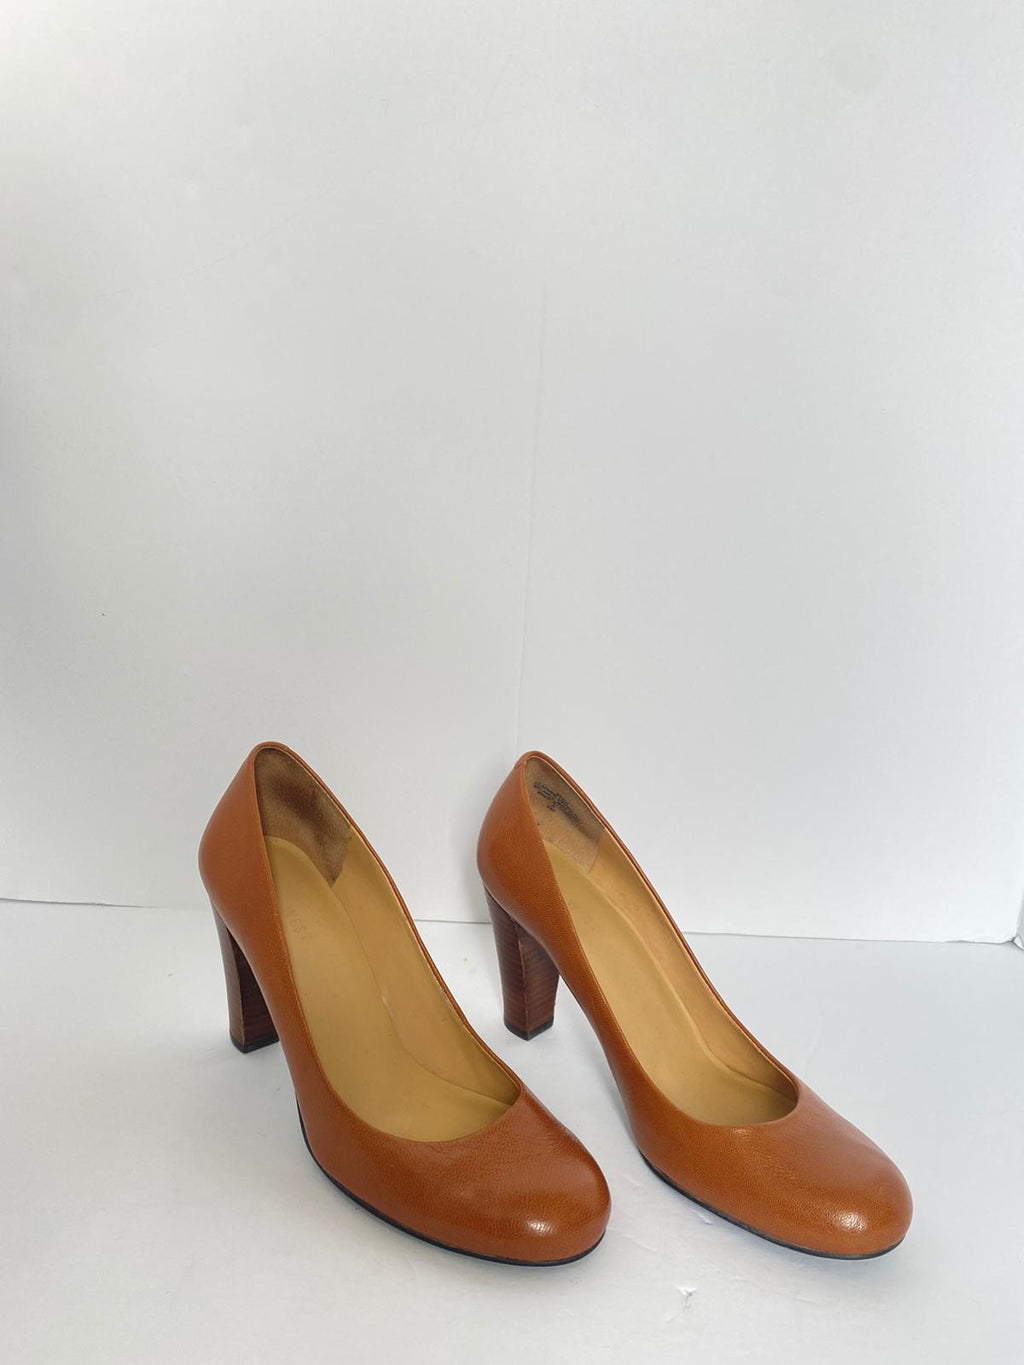 Nine West Brown Leather Round Toe Pump Size 6M